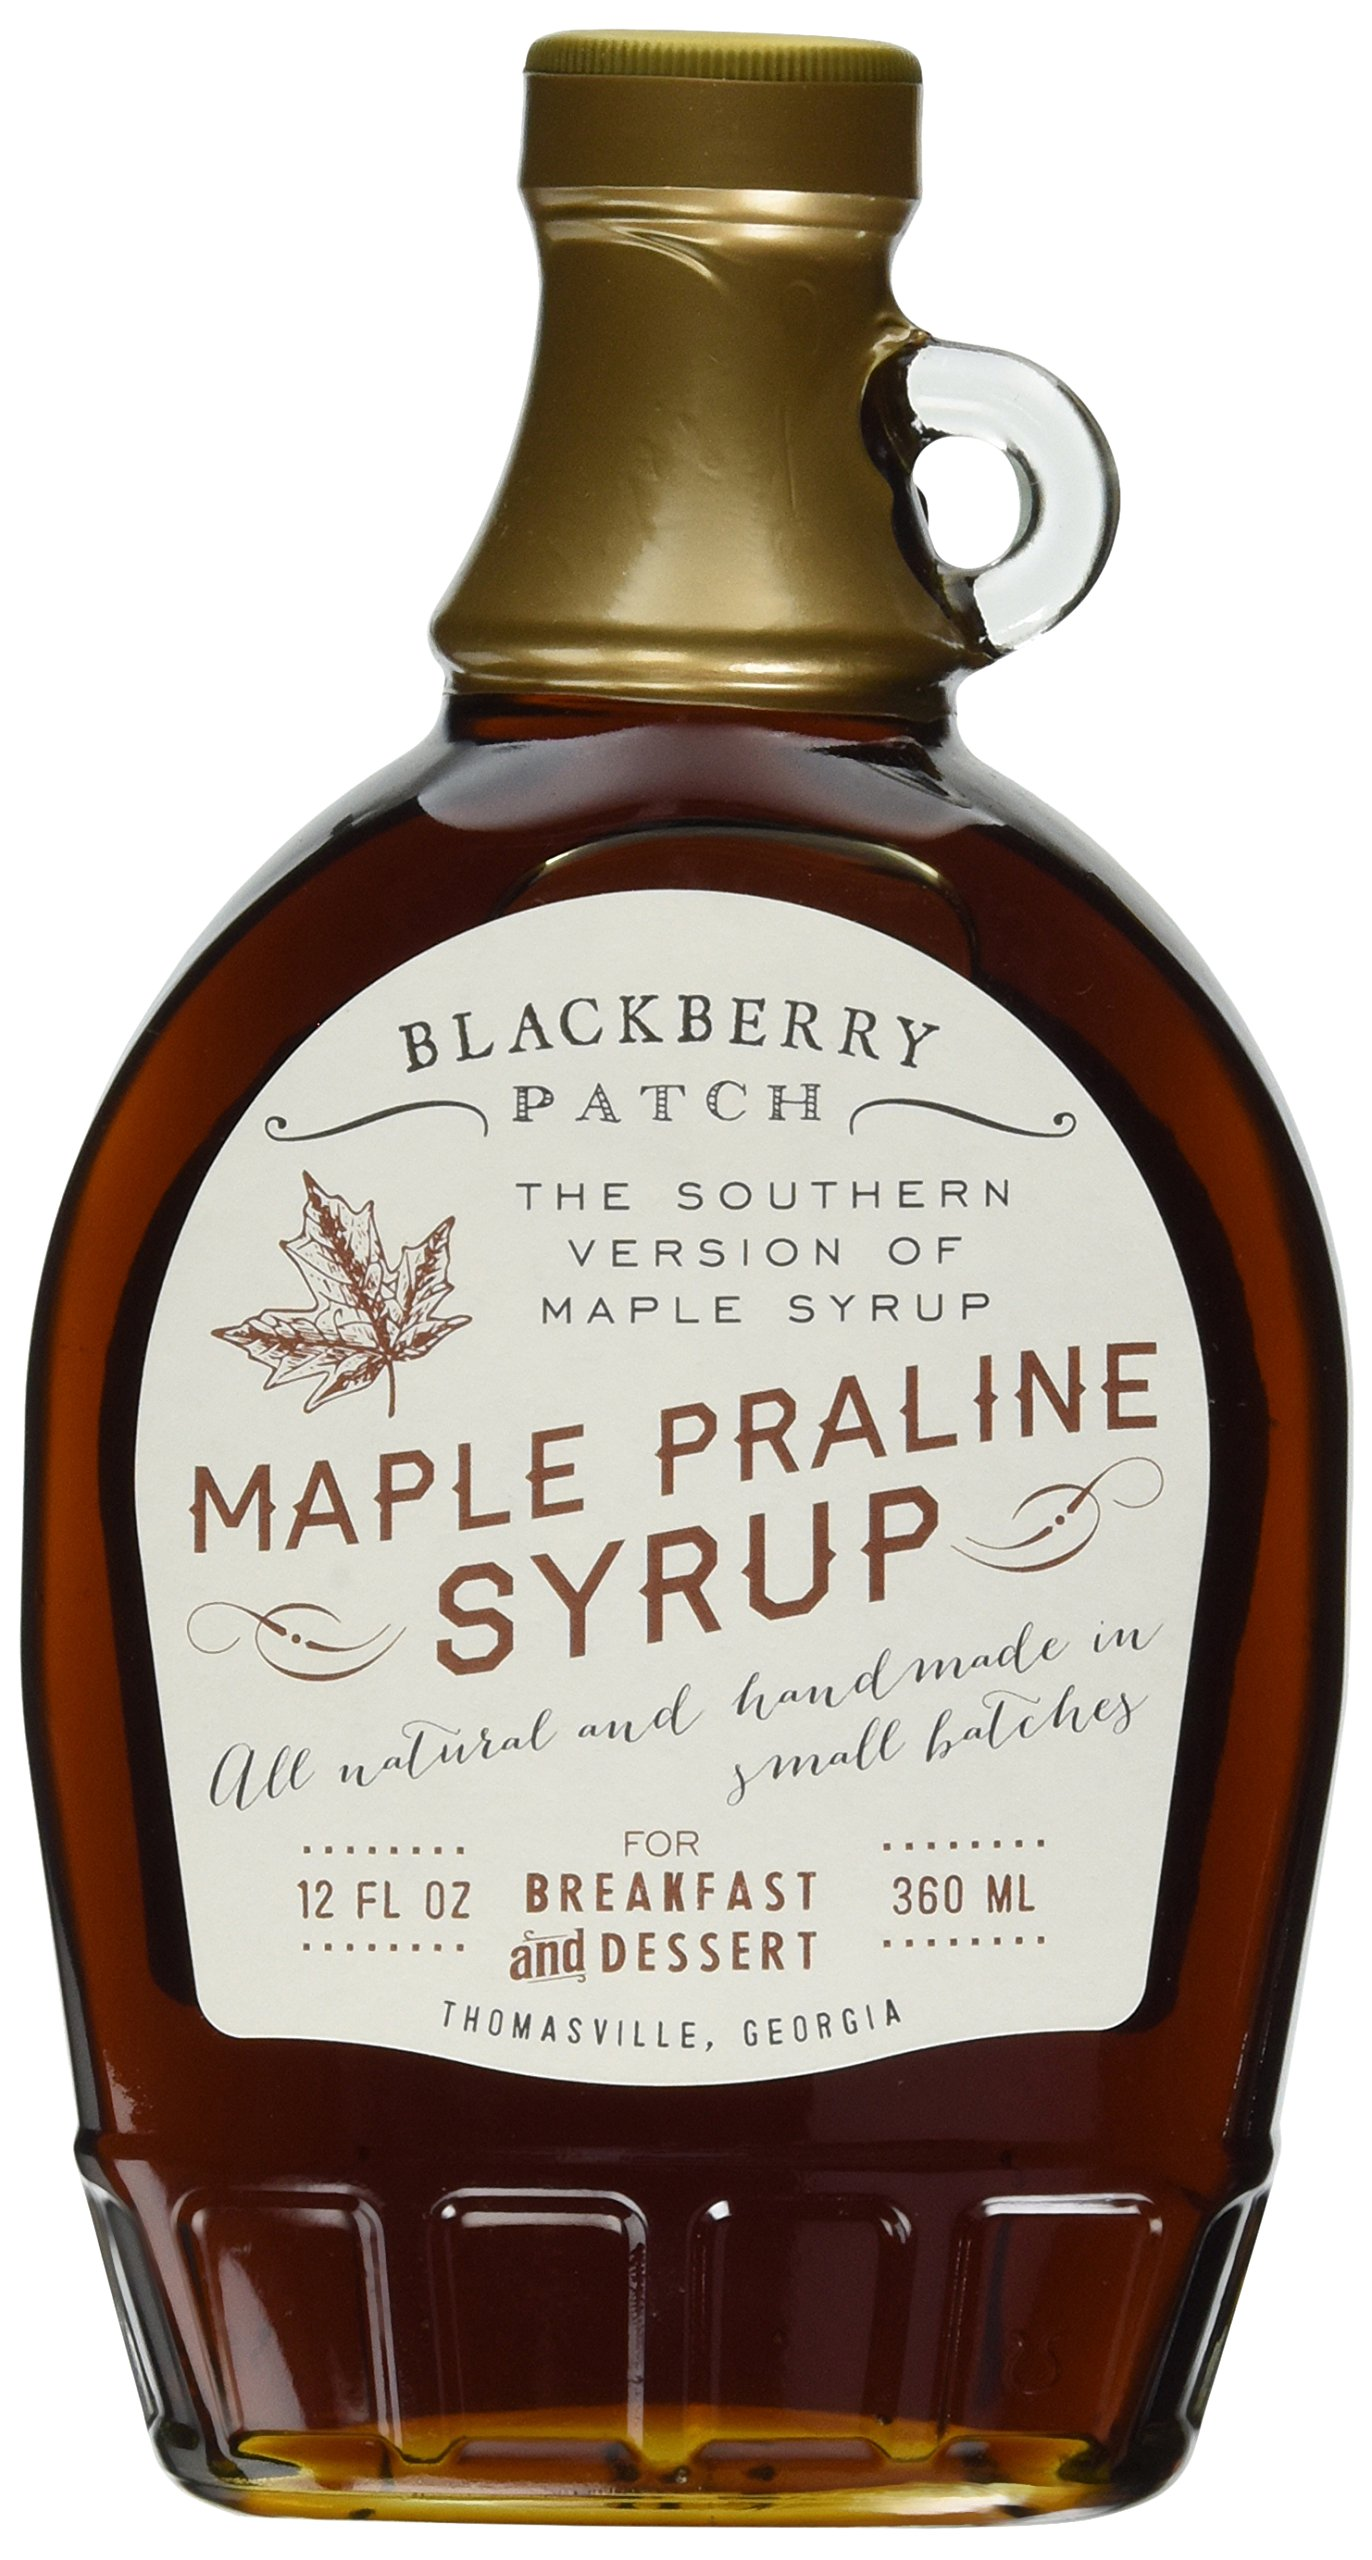 Maple Praline Syrup, Contains SUGAR, 12 oz Bottle